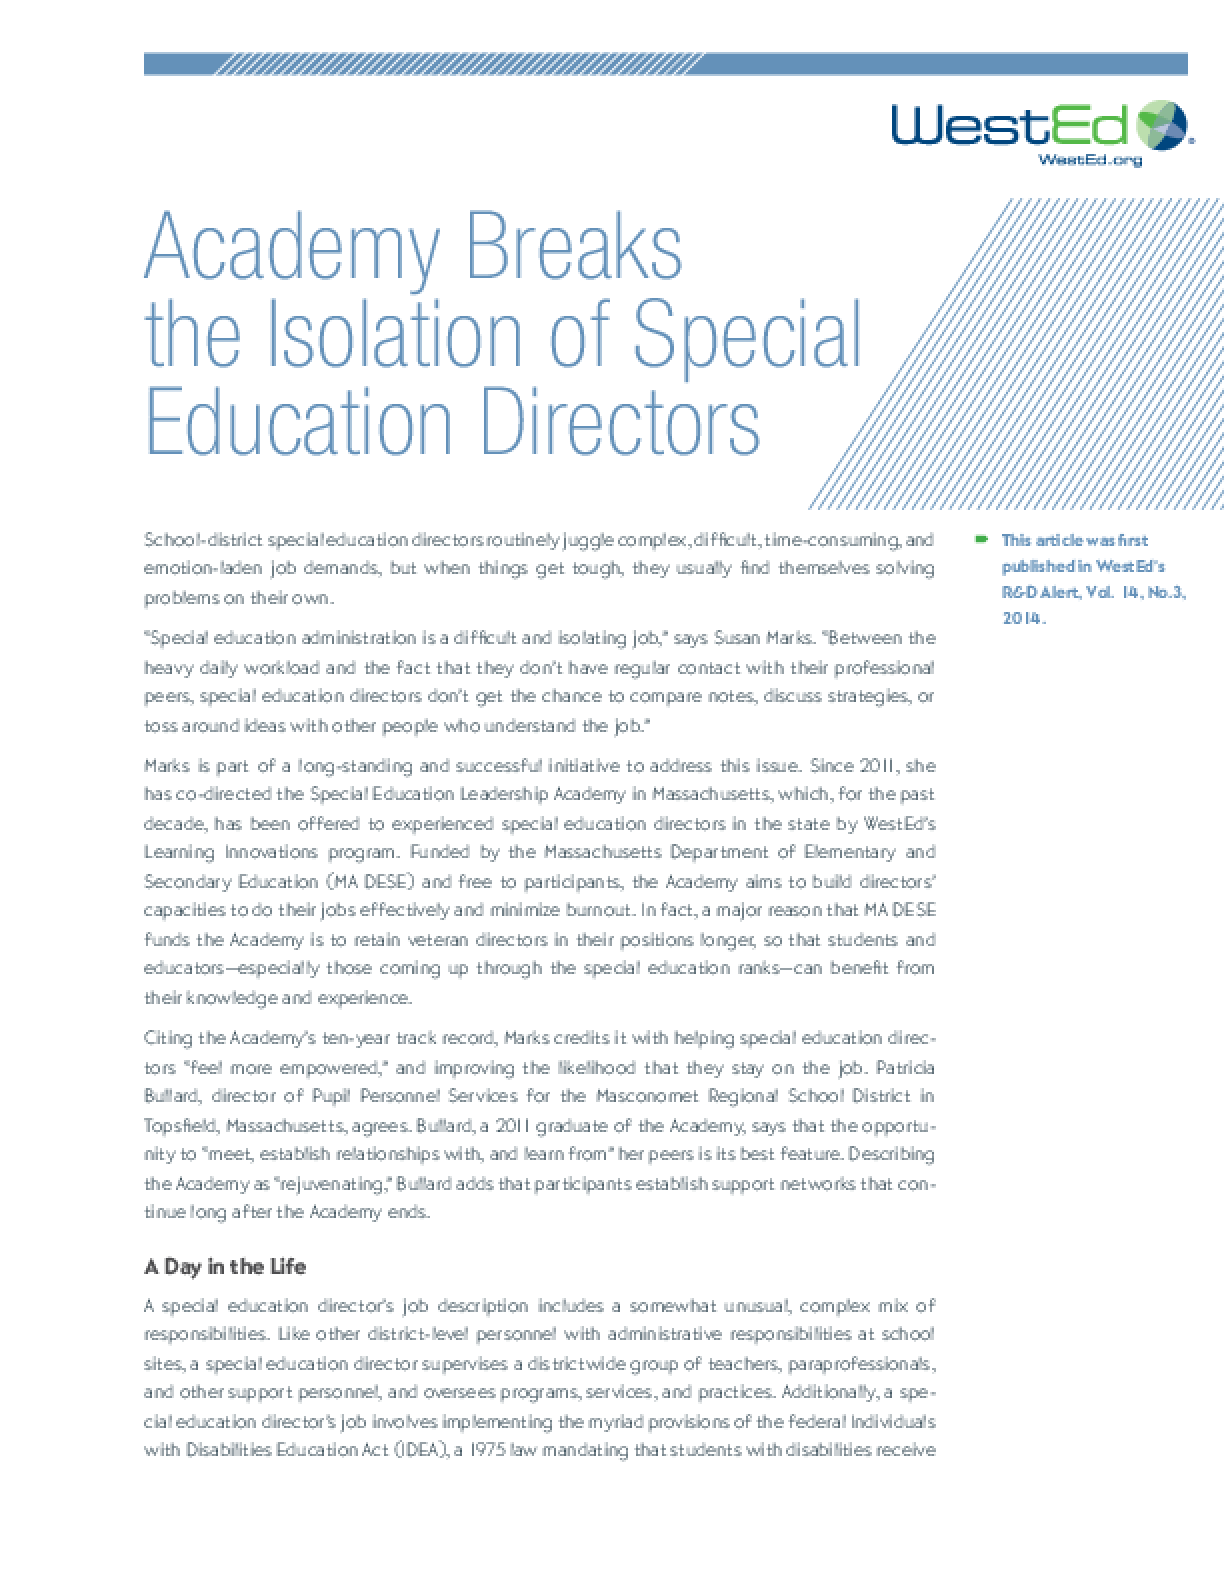 Academy Breaks the Isolation of Special Education Directors